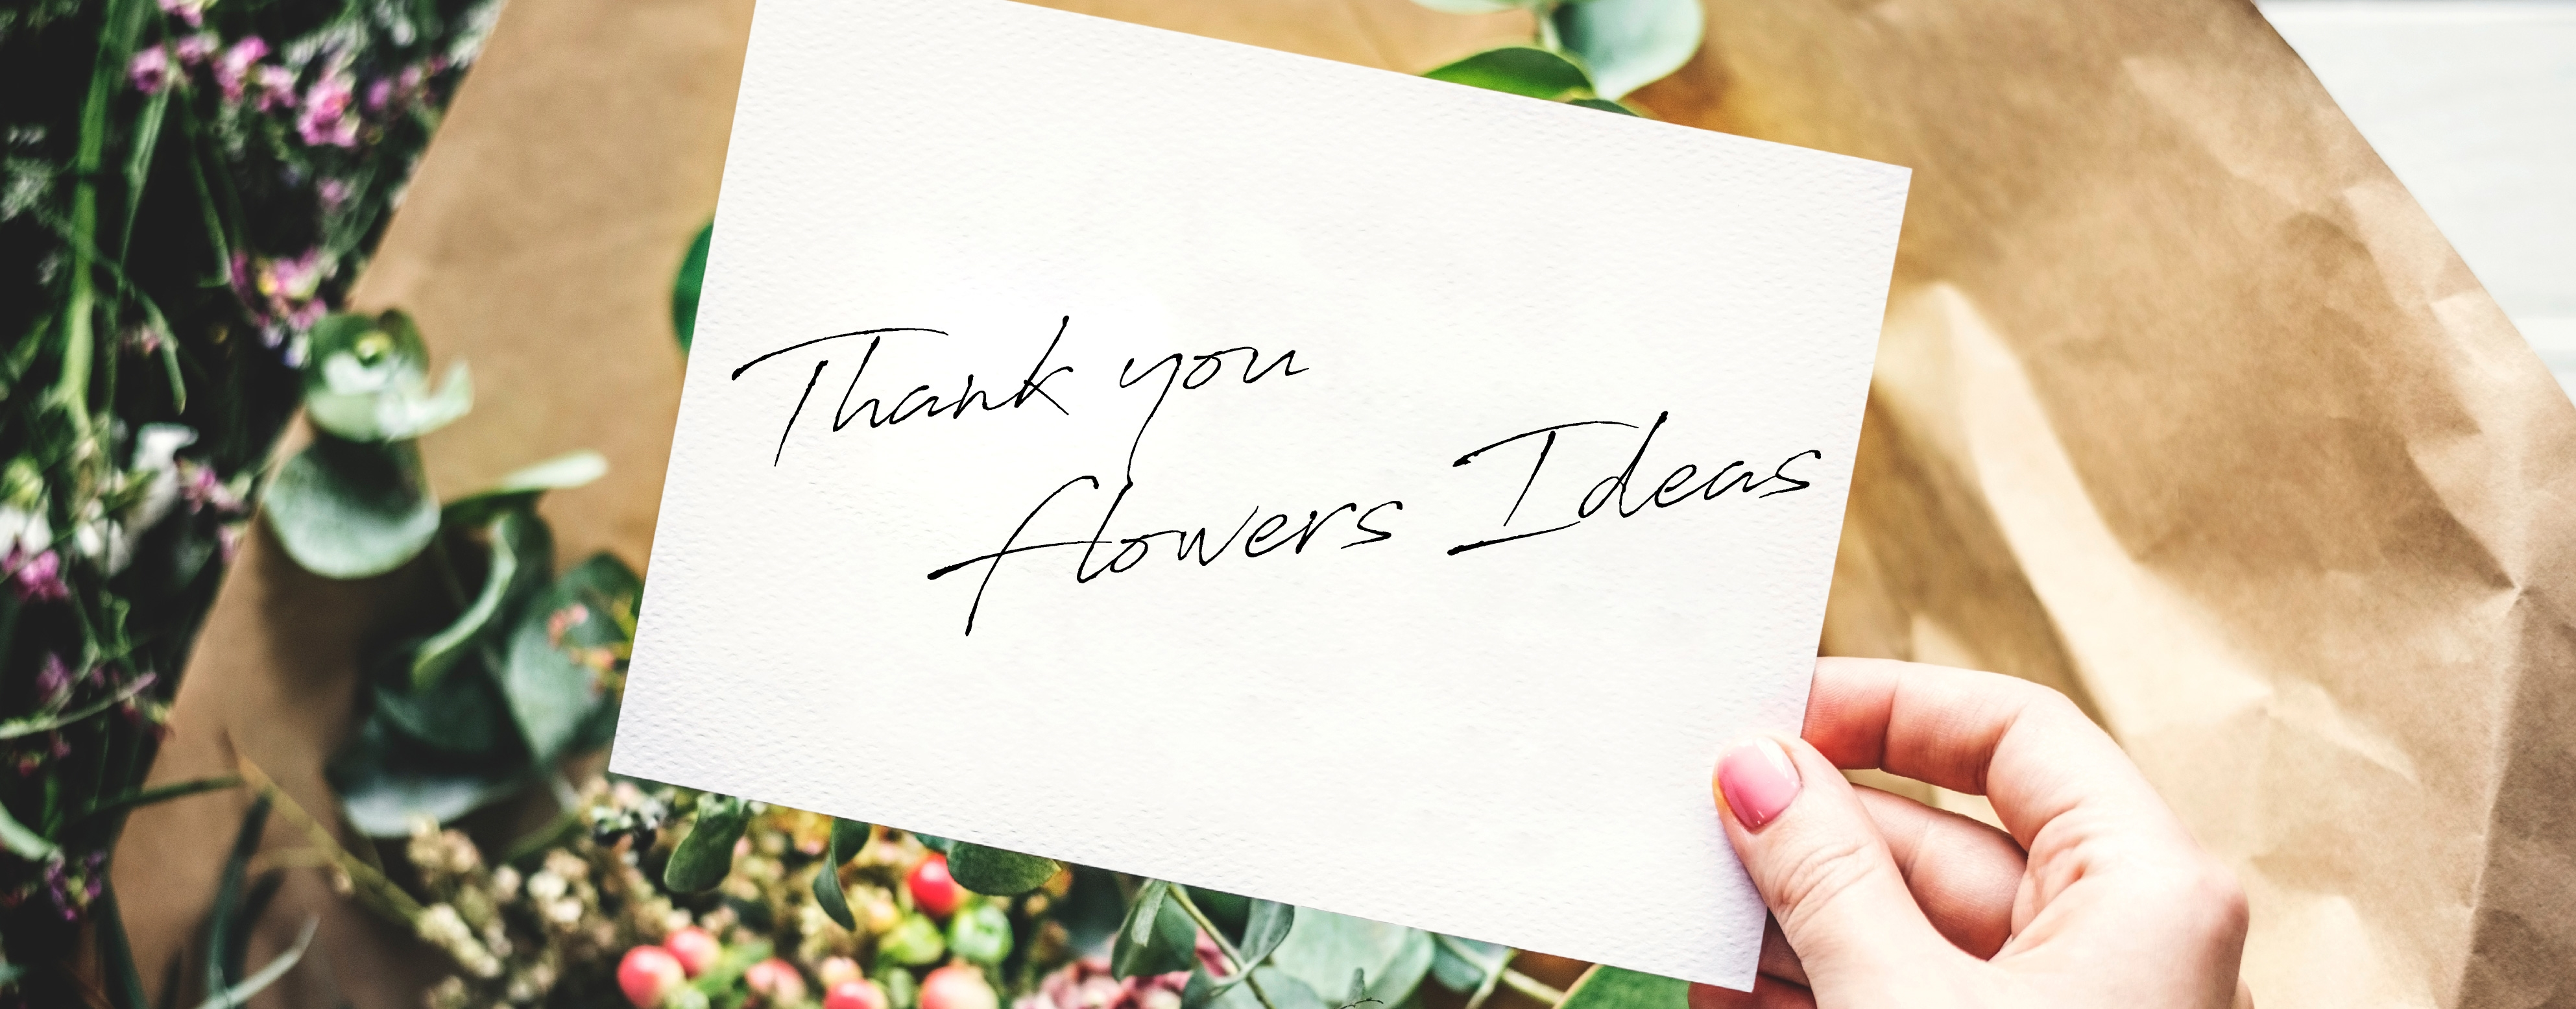 HThank You Flowers Idea